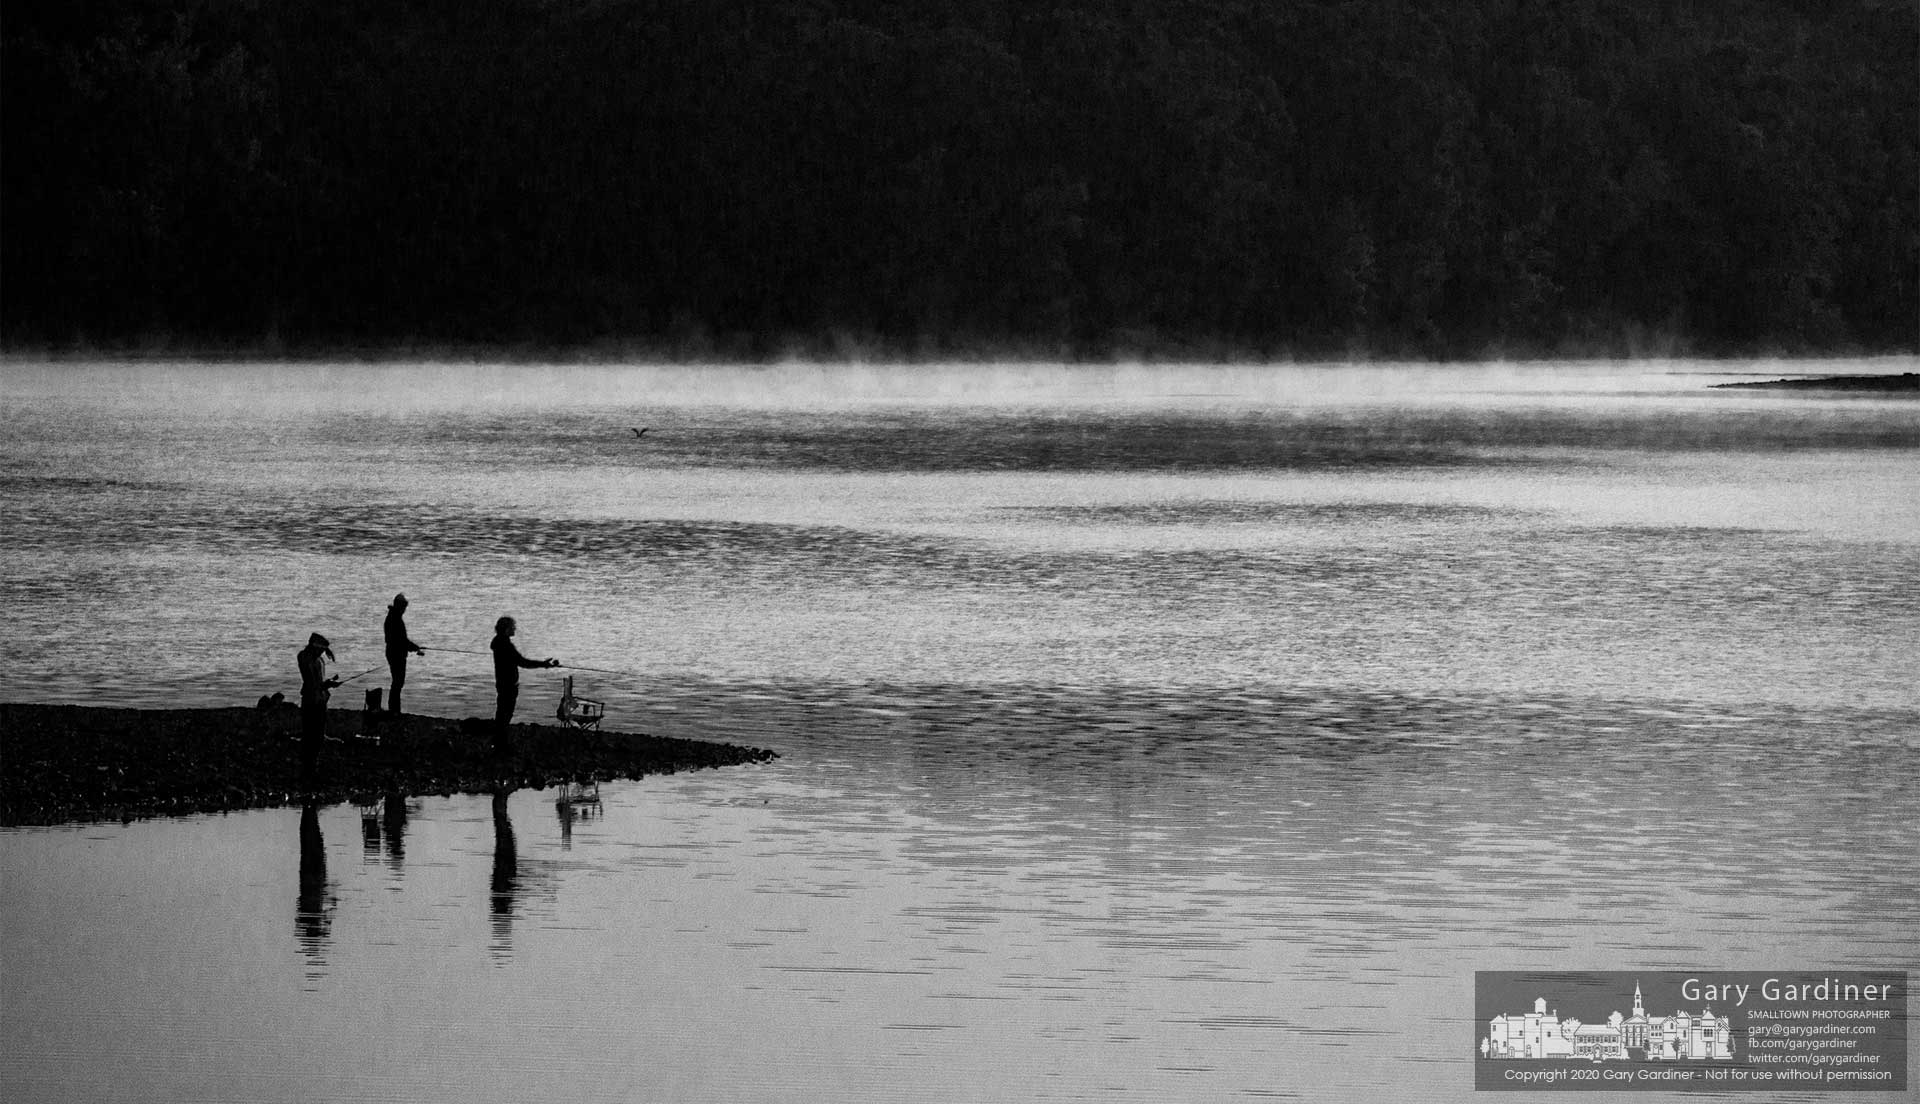 Anglers try their hand casting rods into the water of mist-covered Hoover Reservoir in the morning just after sunrise. My Final Photo for Sept. 17, 2020.